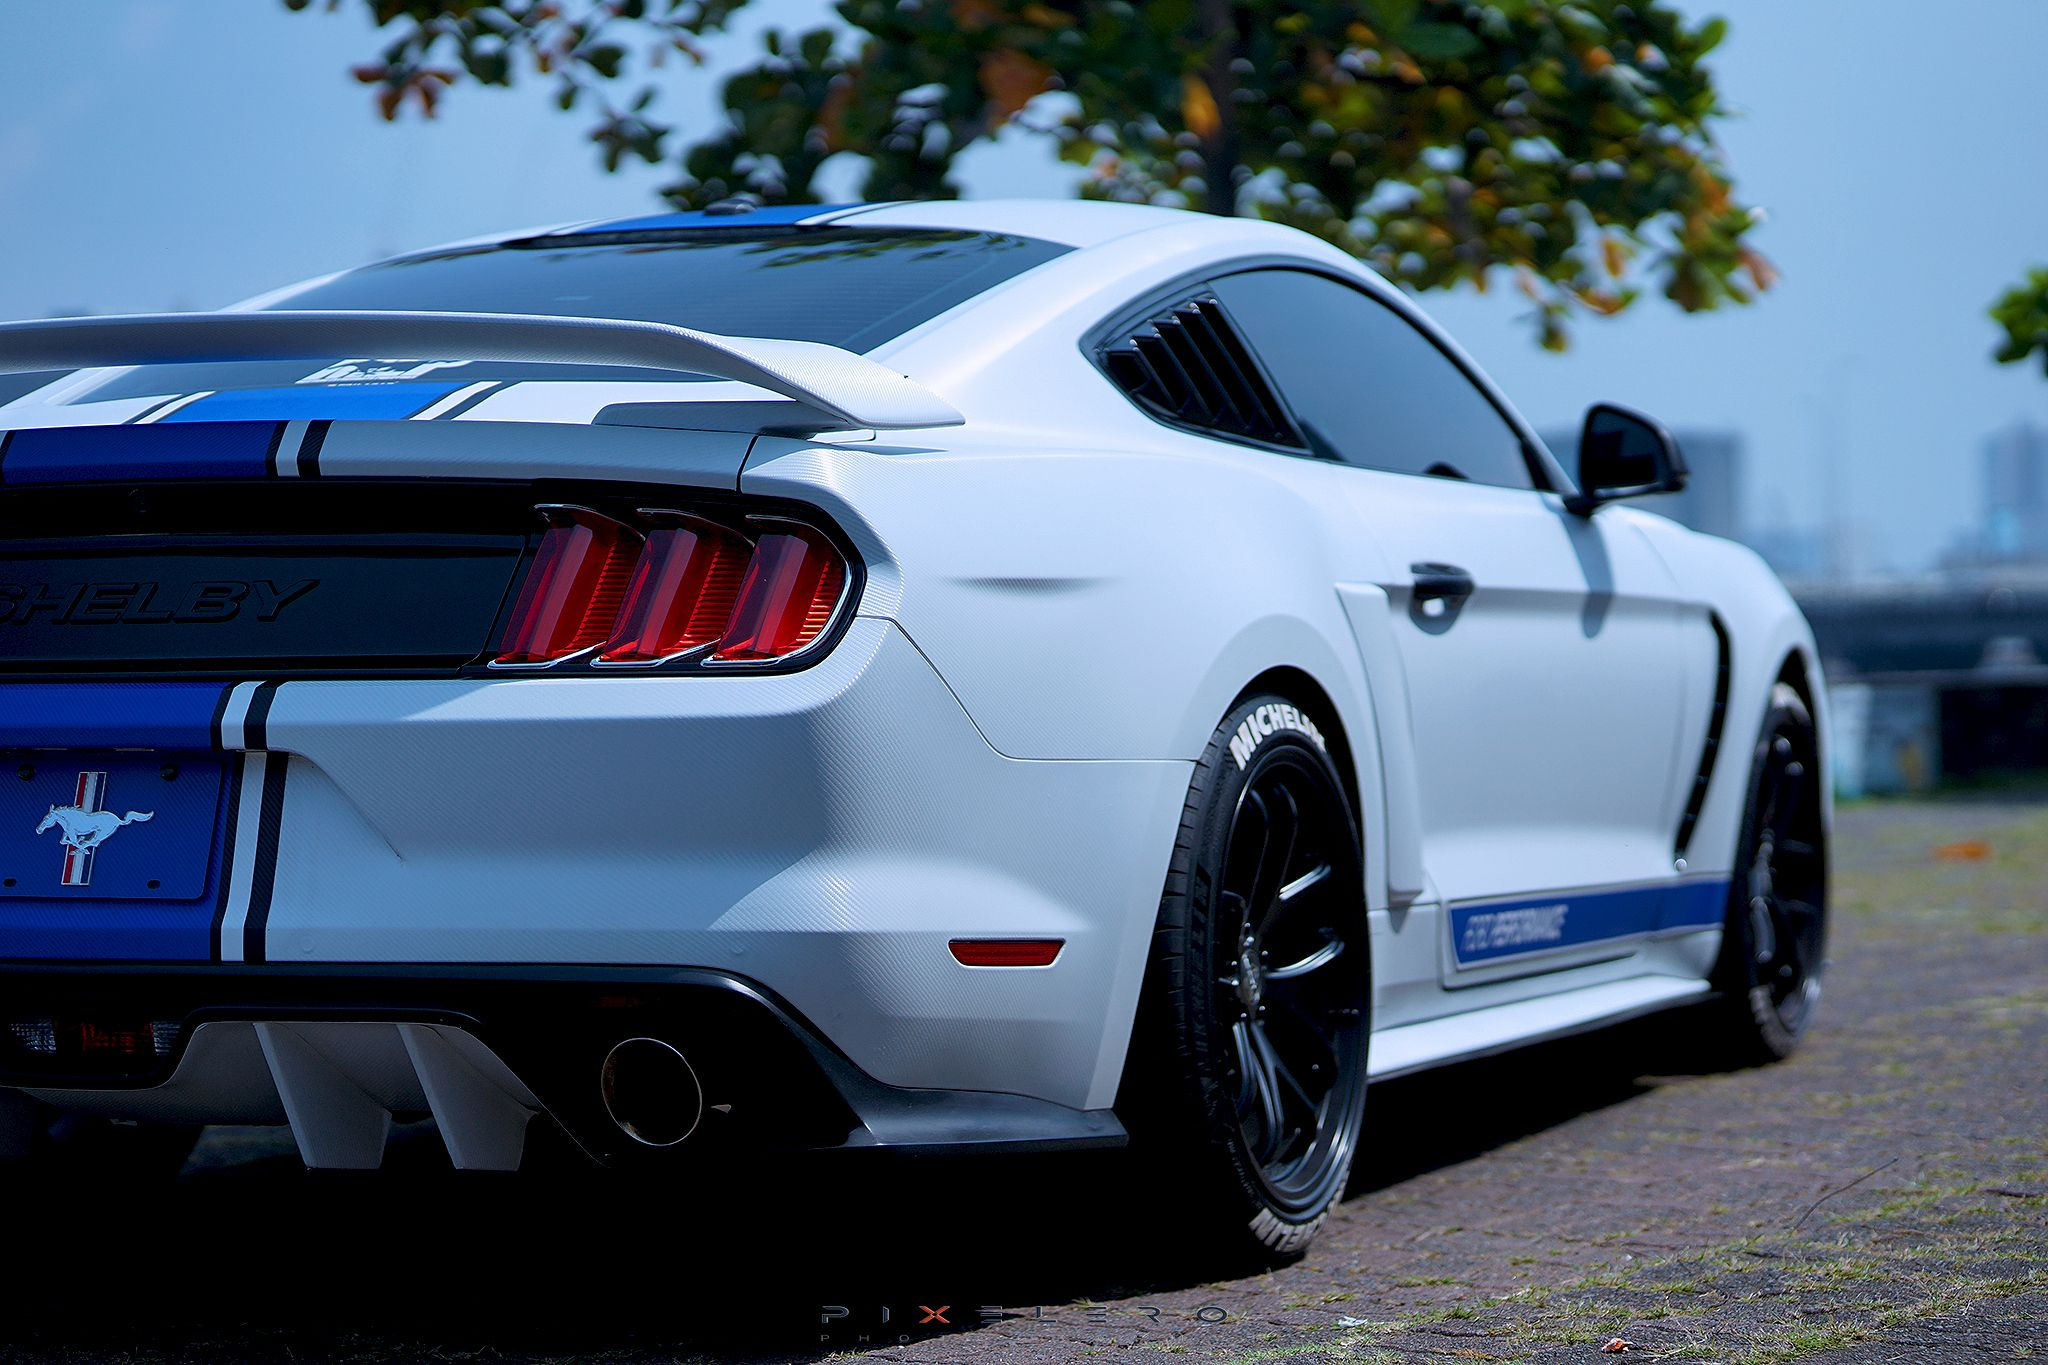 Mustang Ecoboost in GT350R spoiler, GT350 fender, and